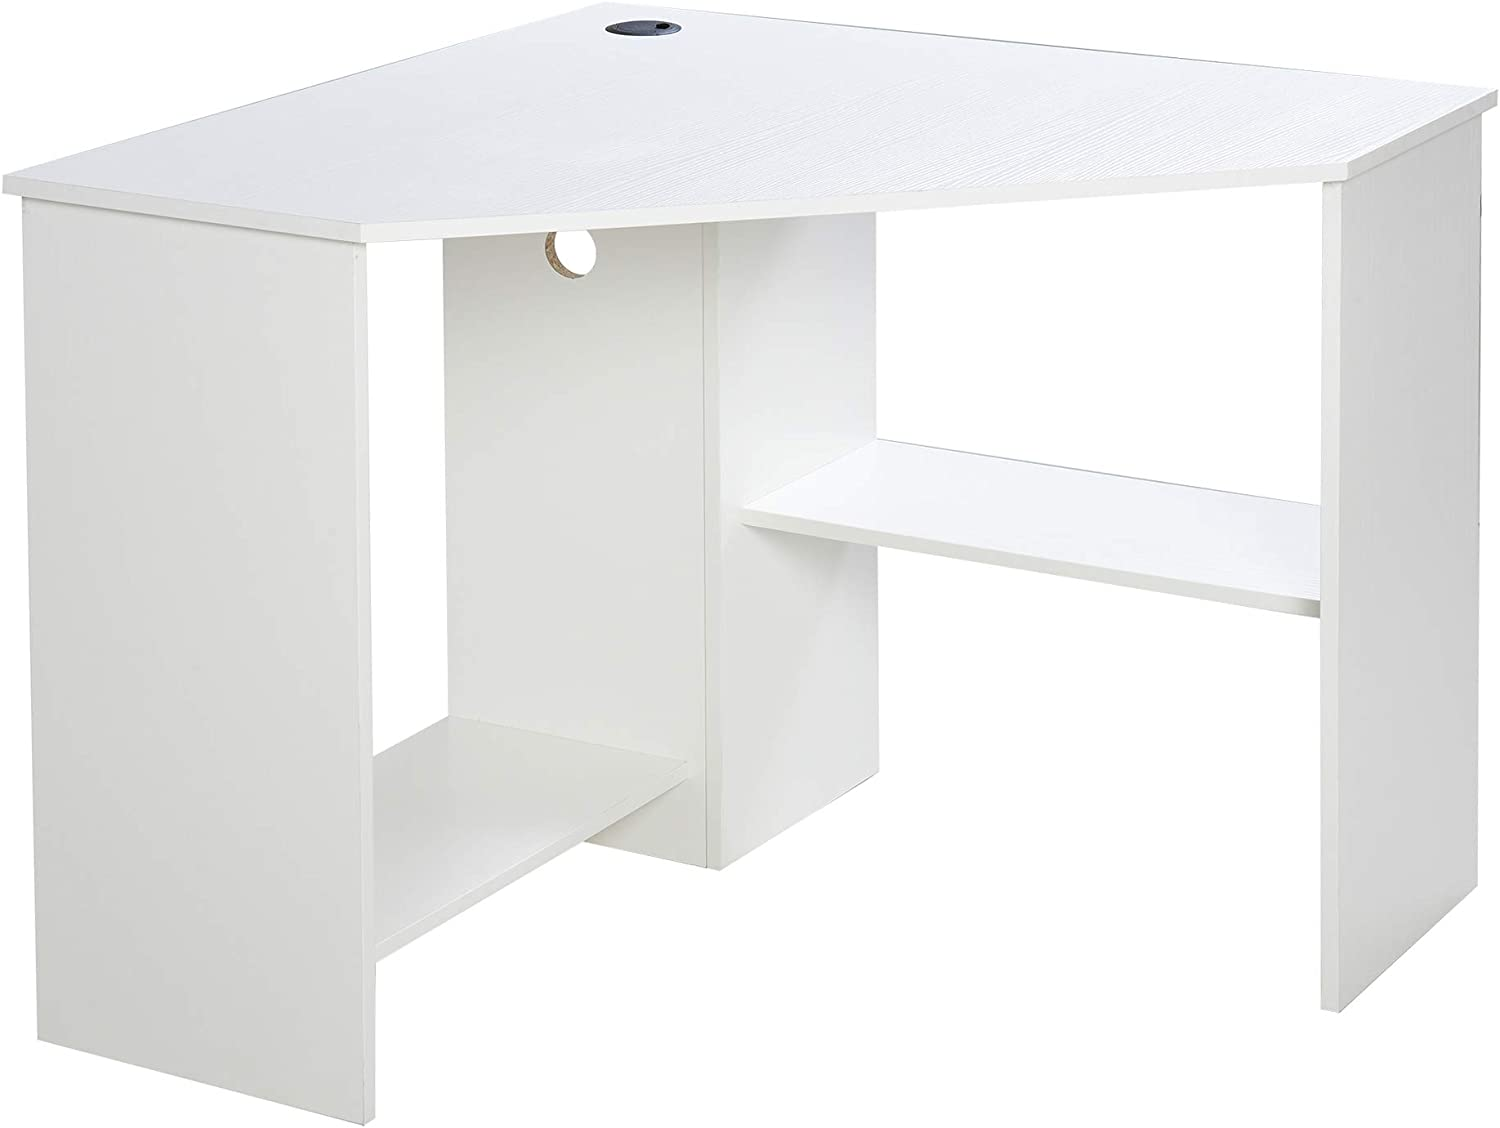 HOMCOM Multi-Tier Corner Computer Desk Writing Table for Home & Office with Multiple Shelves Built for Storage, White